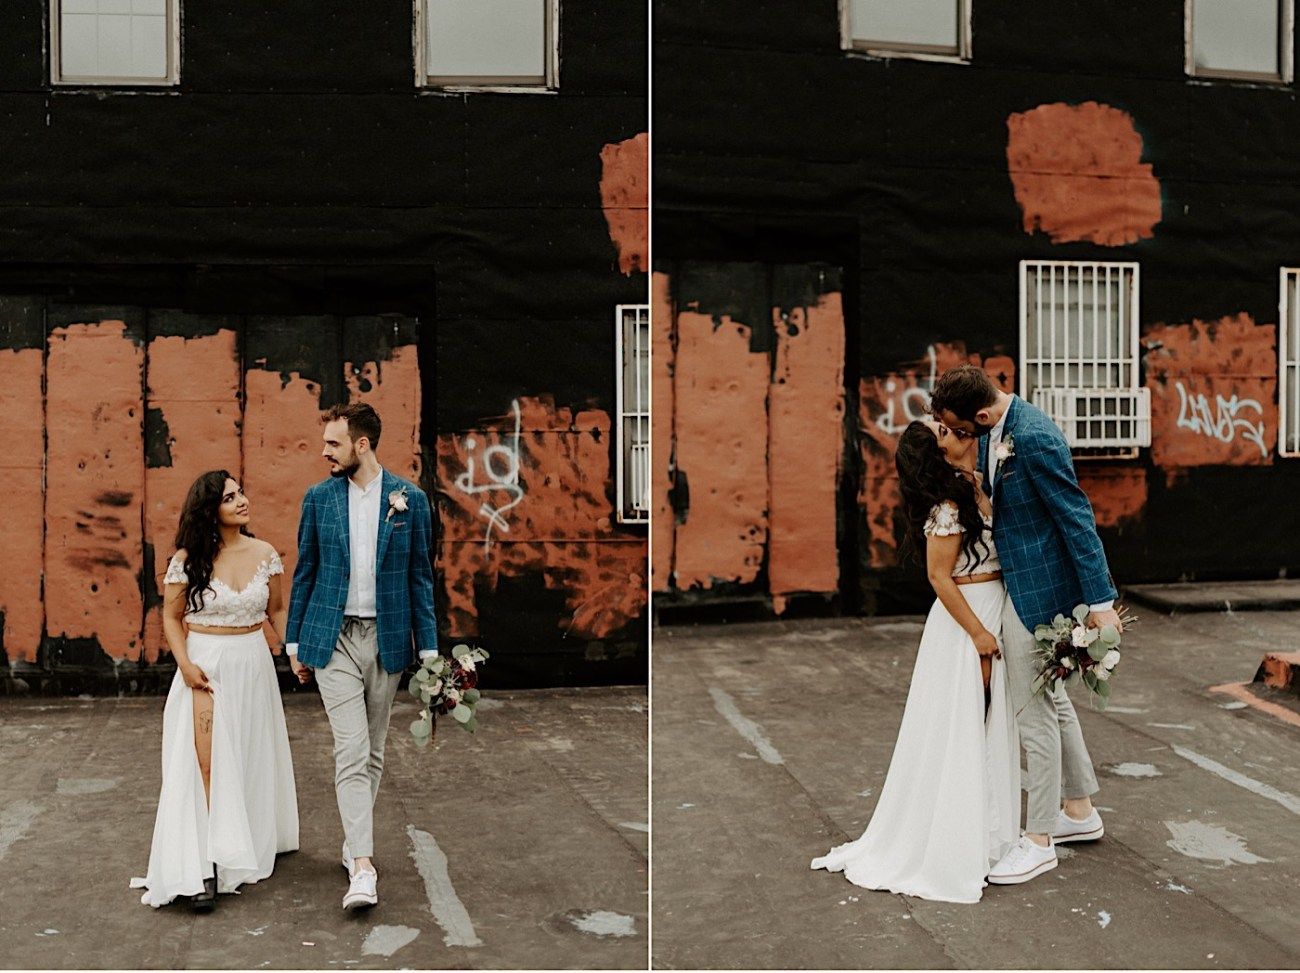 LIC Wedding Greenpoint Wedding LIC Elopement New York Wedding Photographer 087